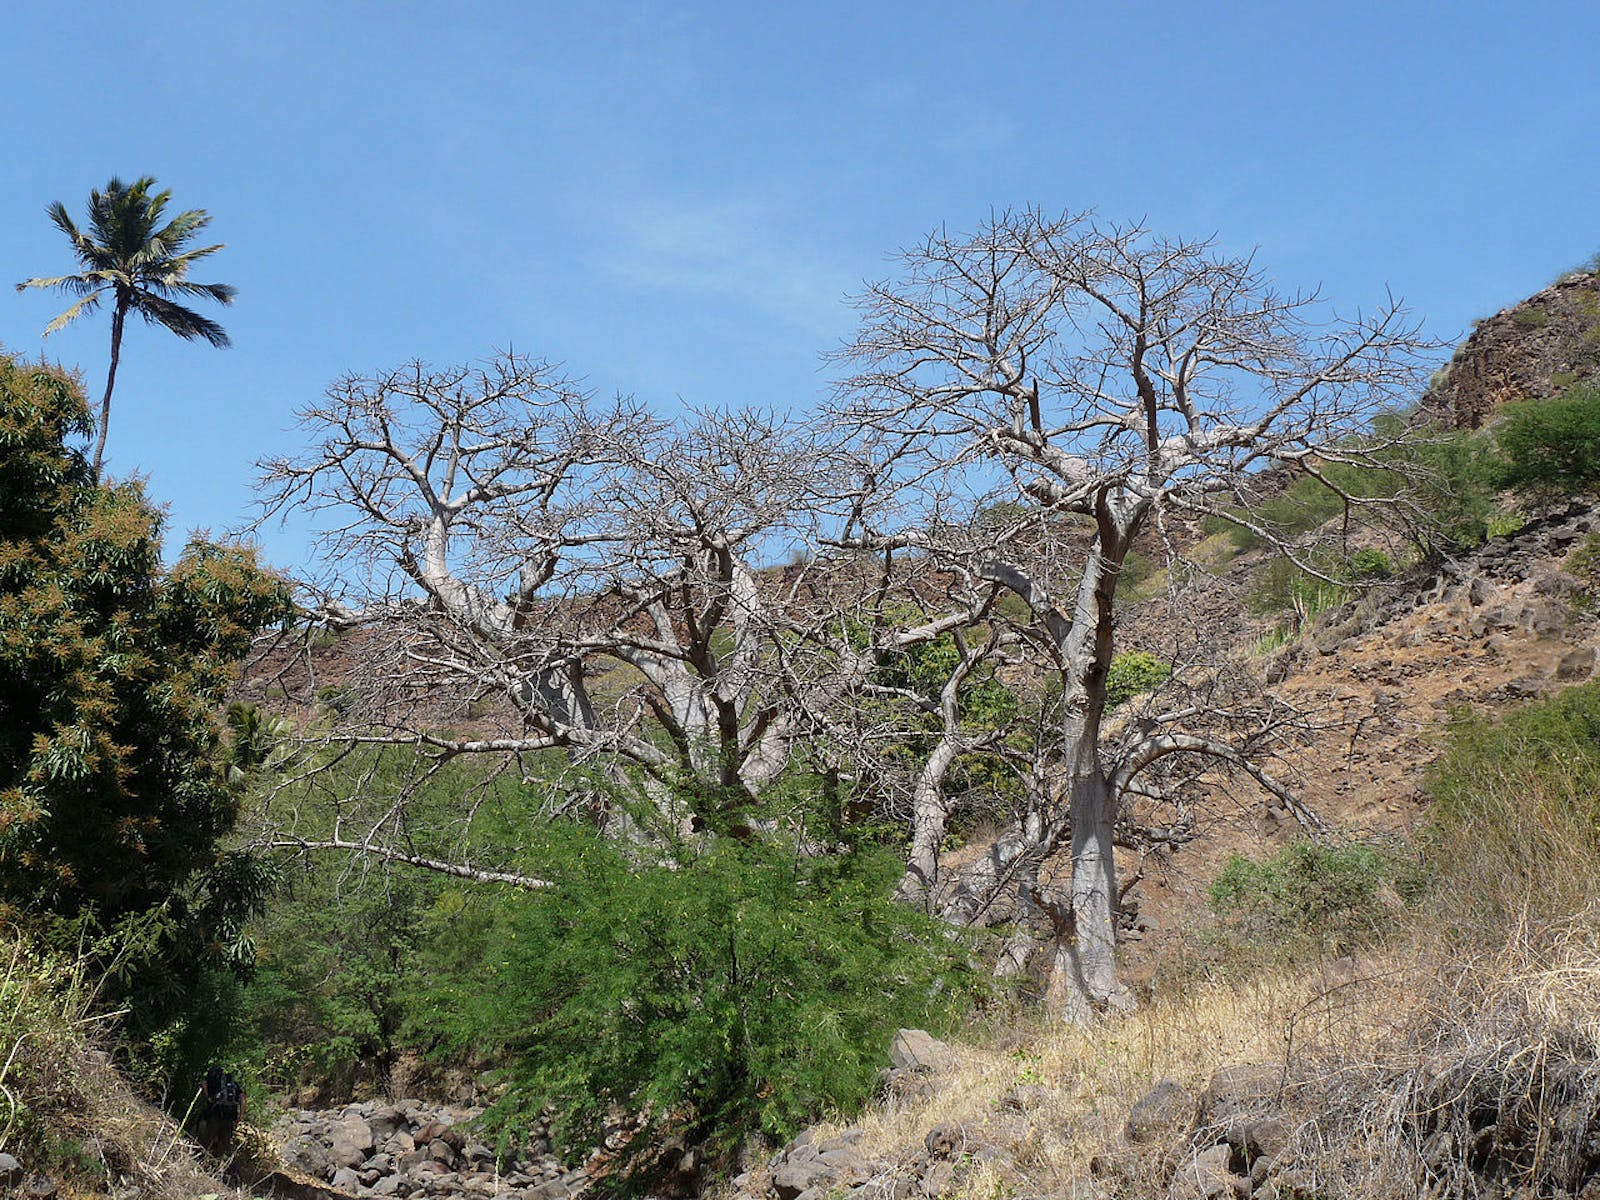 Cape Verde Islands Dry Forests